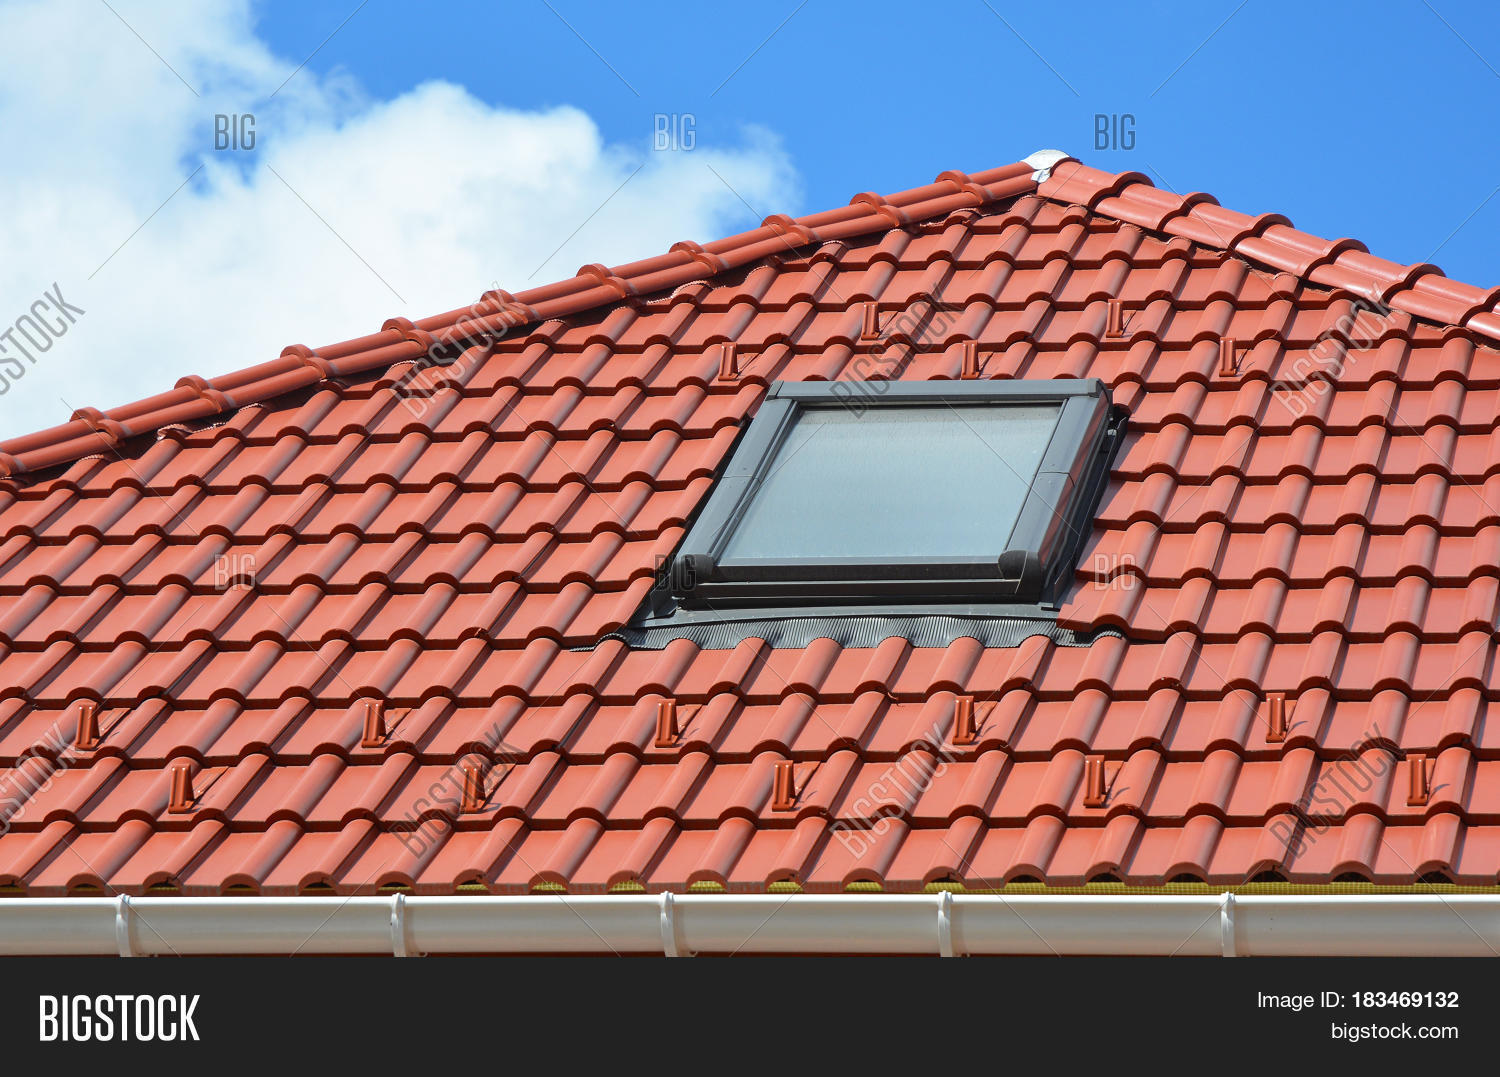 Skylight on red ceramic roof tiles image photo bigstock skylight on red ceramic roof tiles house roof modern roof skylight attic skylights home dailygadgetfo Image collections